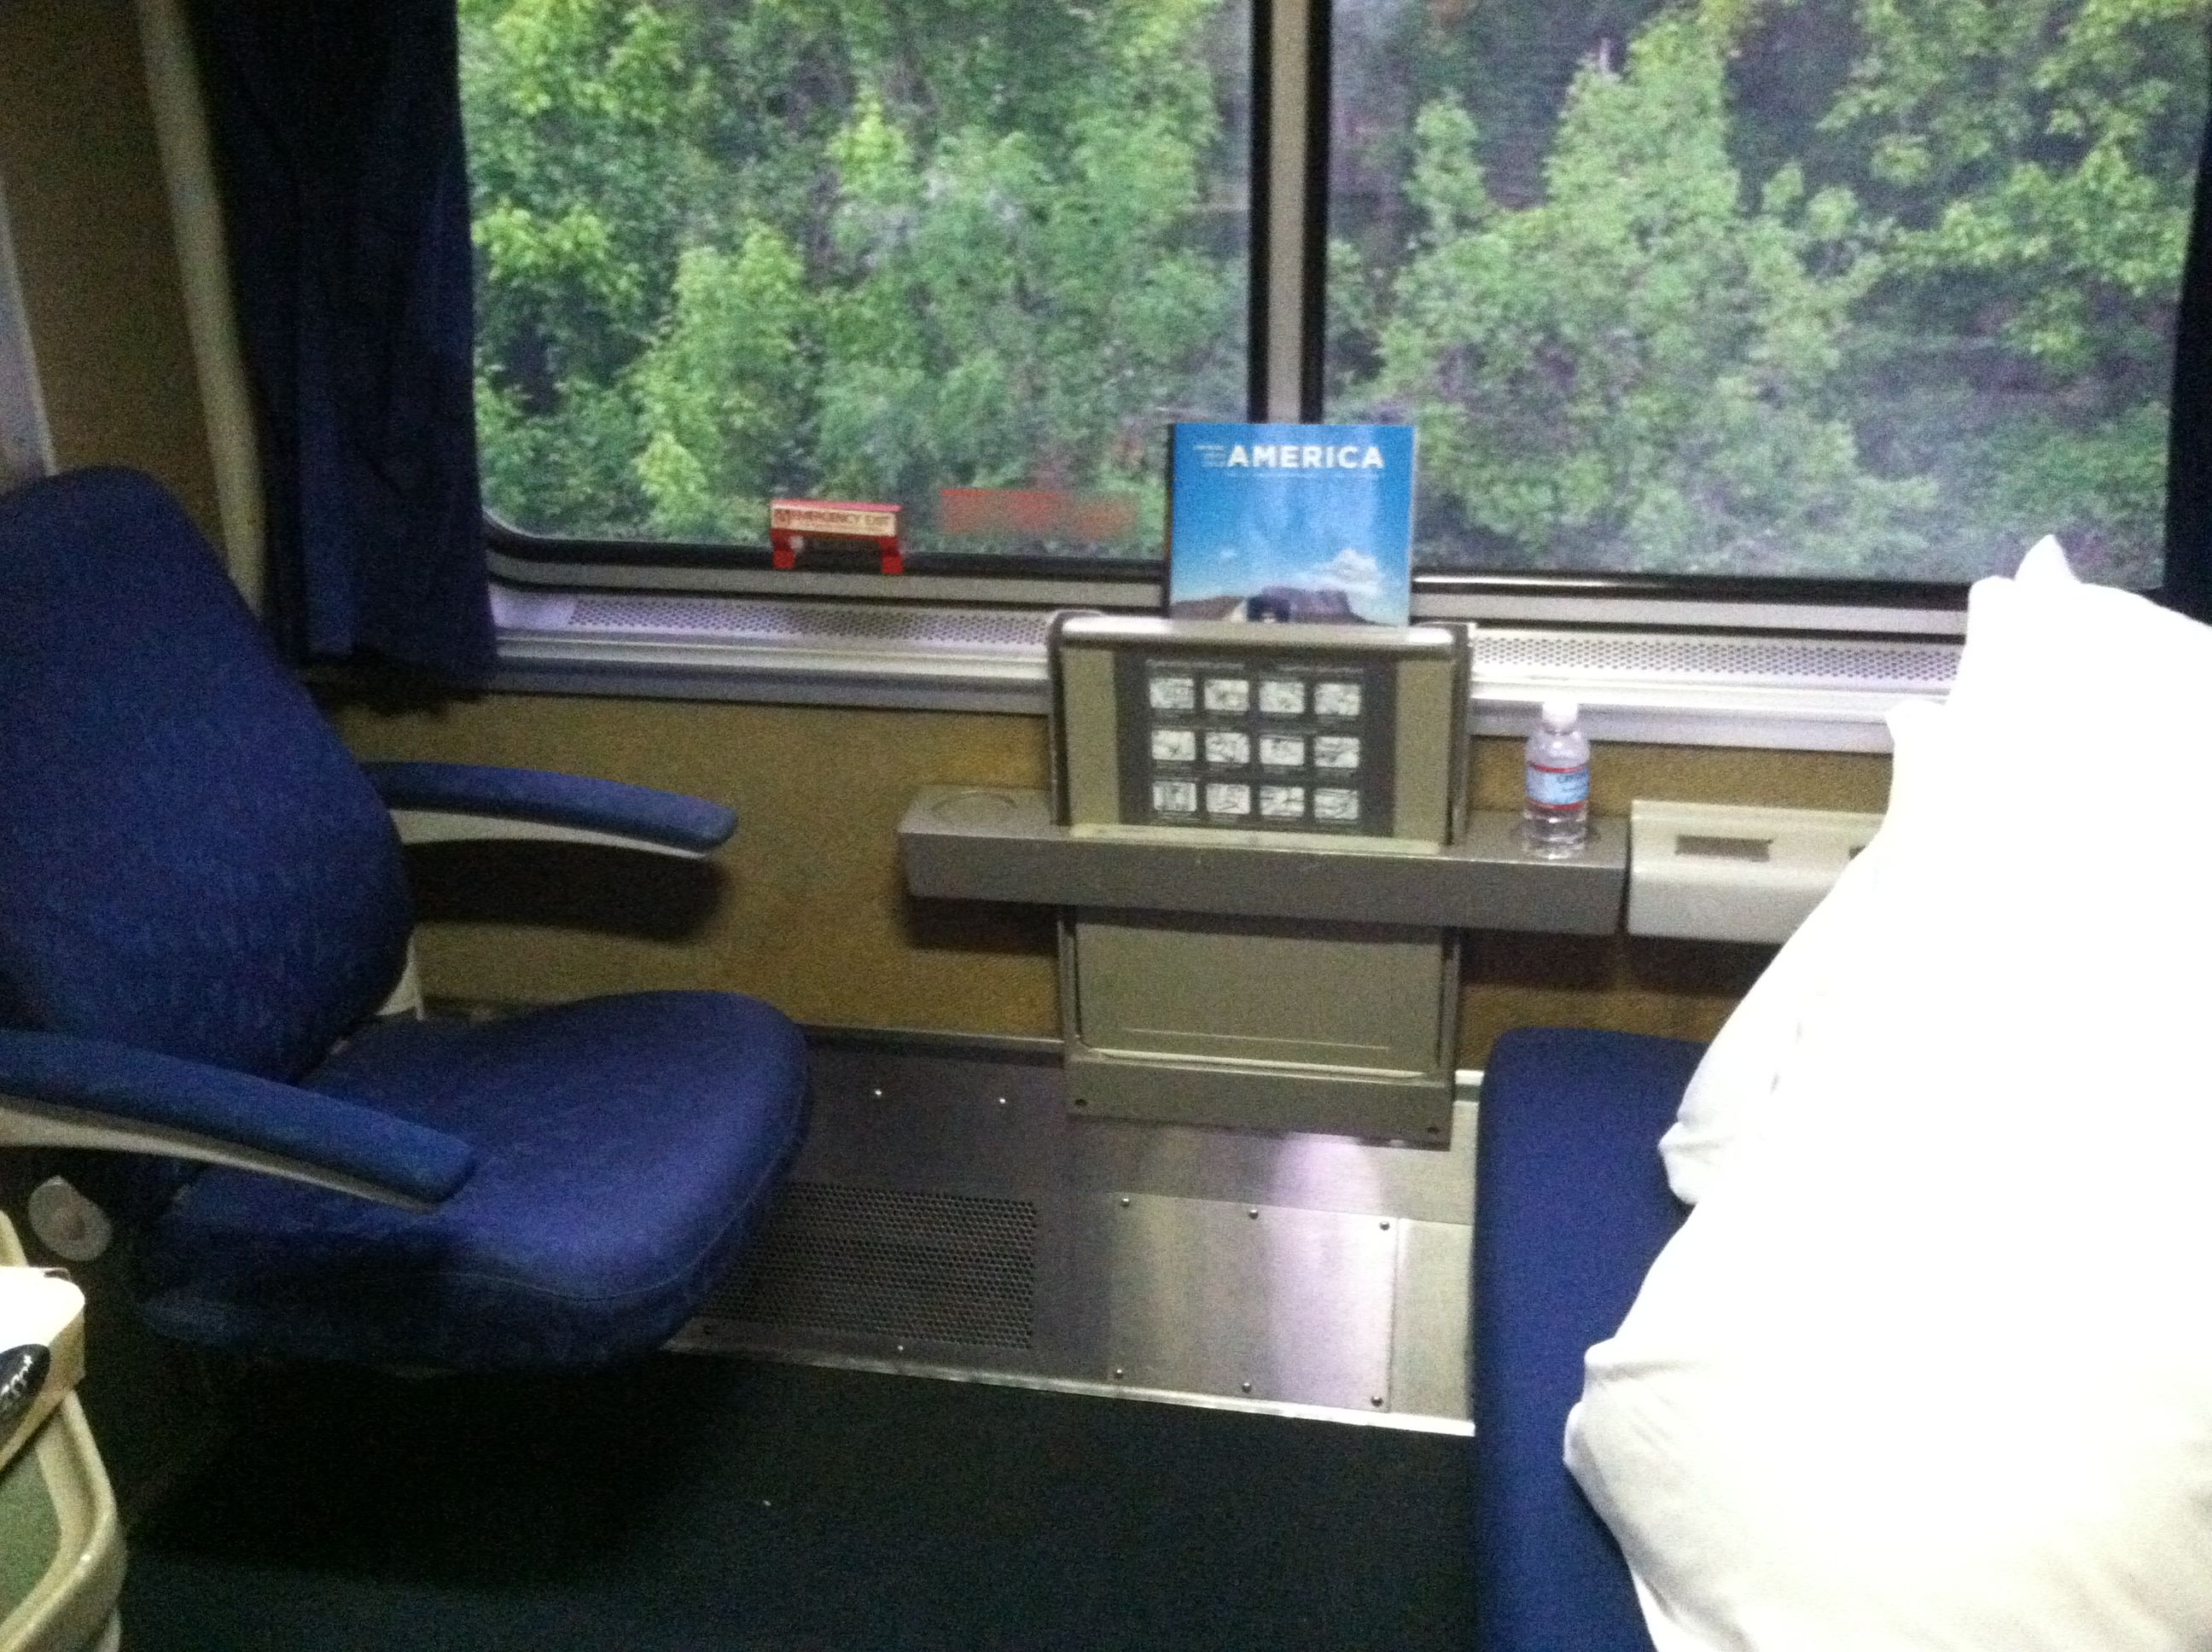 Amtrak Bedroom Image Review